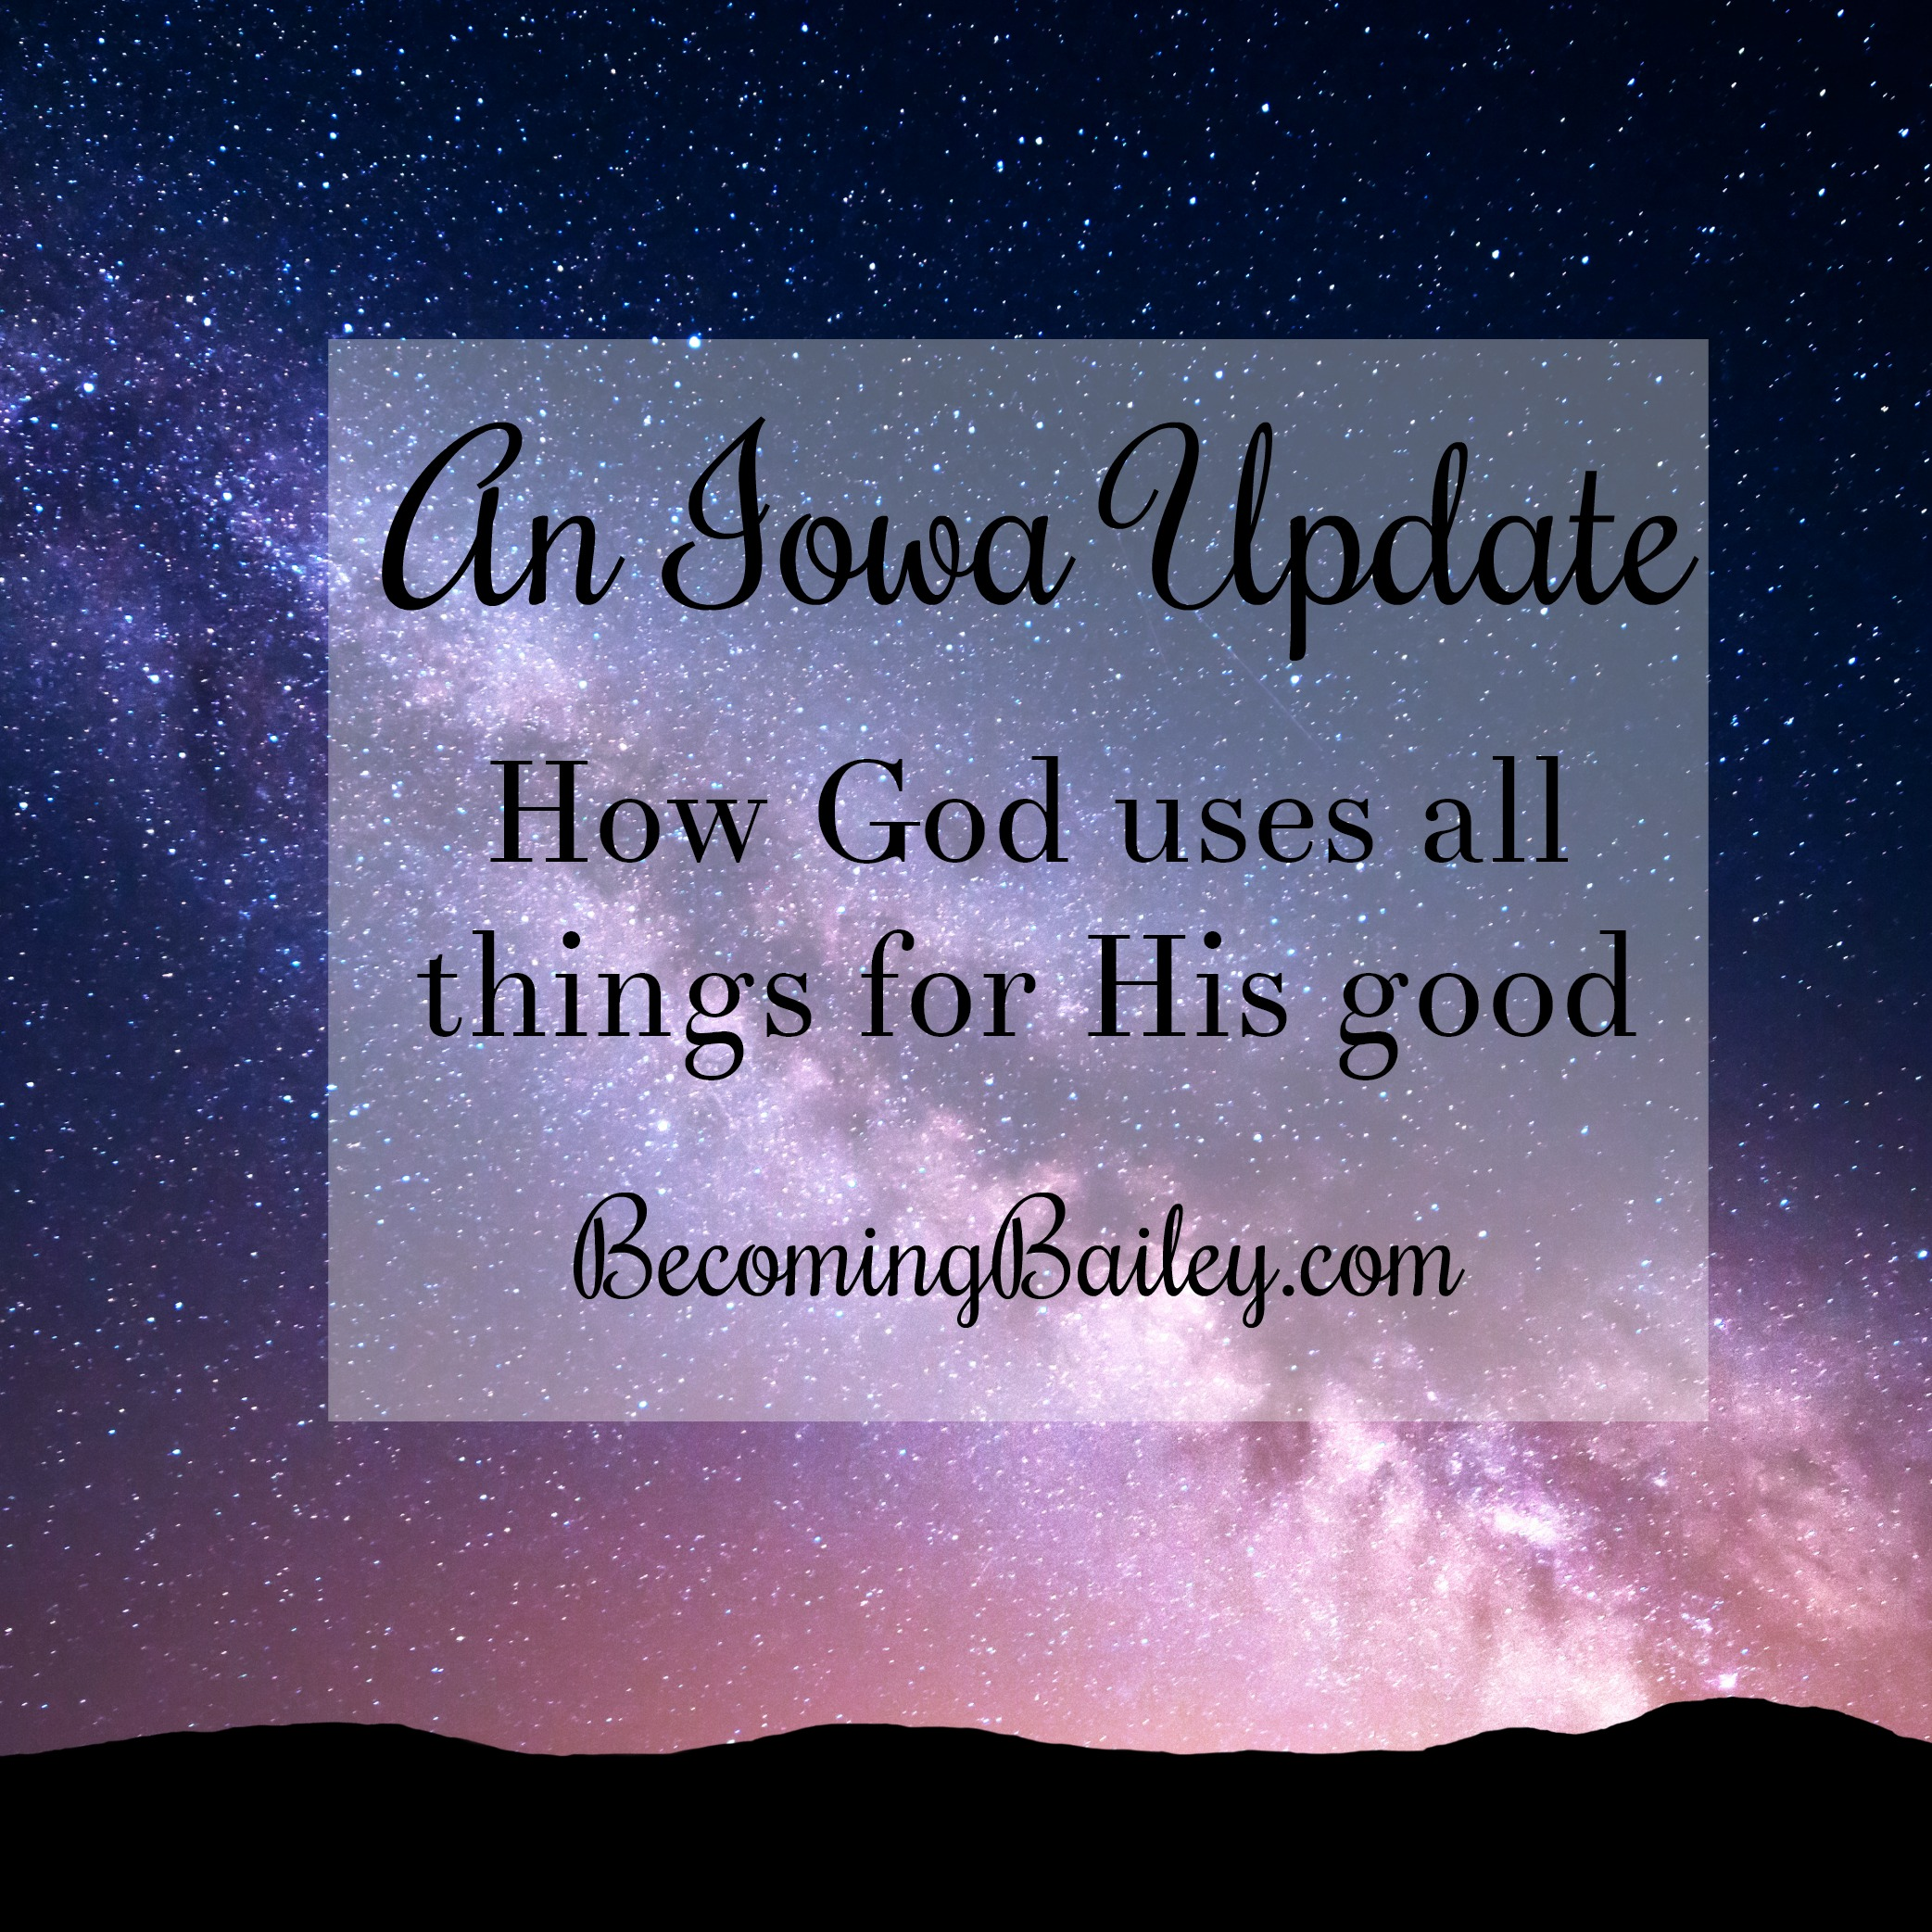 An Iowa Update: How God Uses All Things for His Good